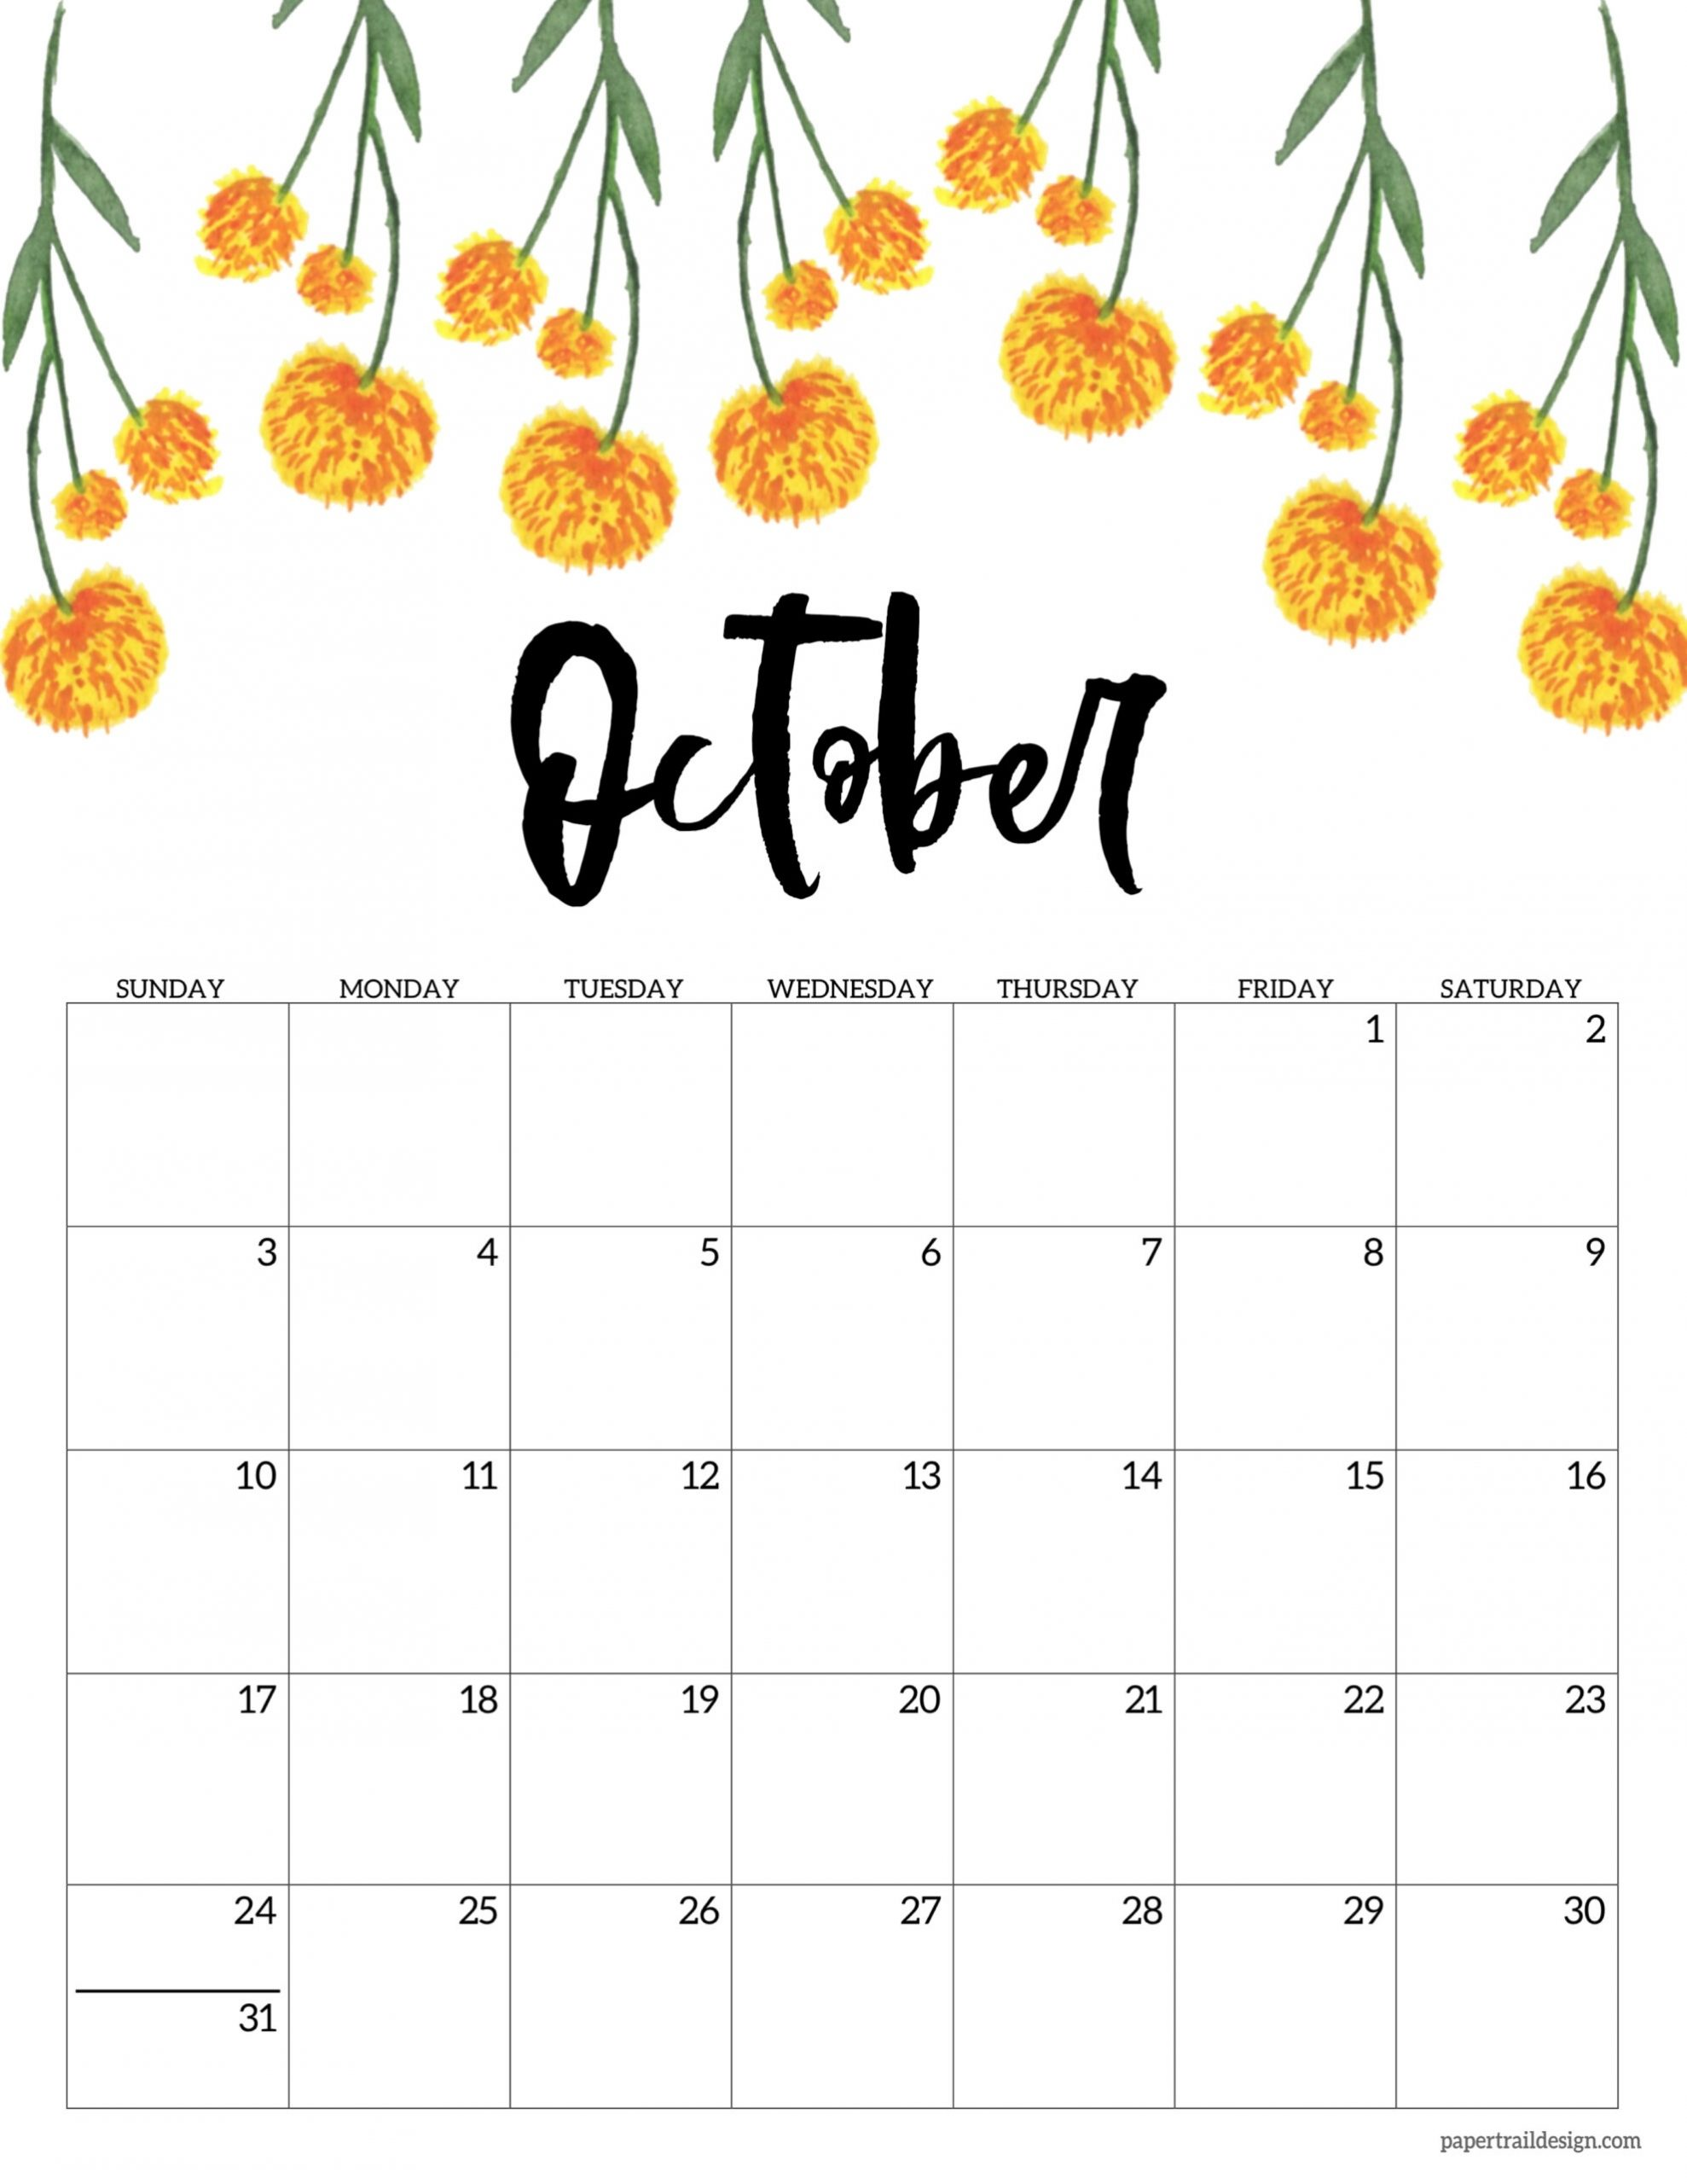 Pick October 2021 Calendar Printable Free